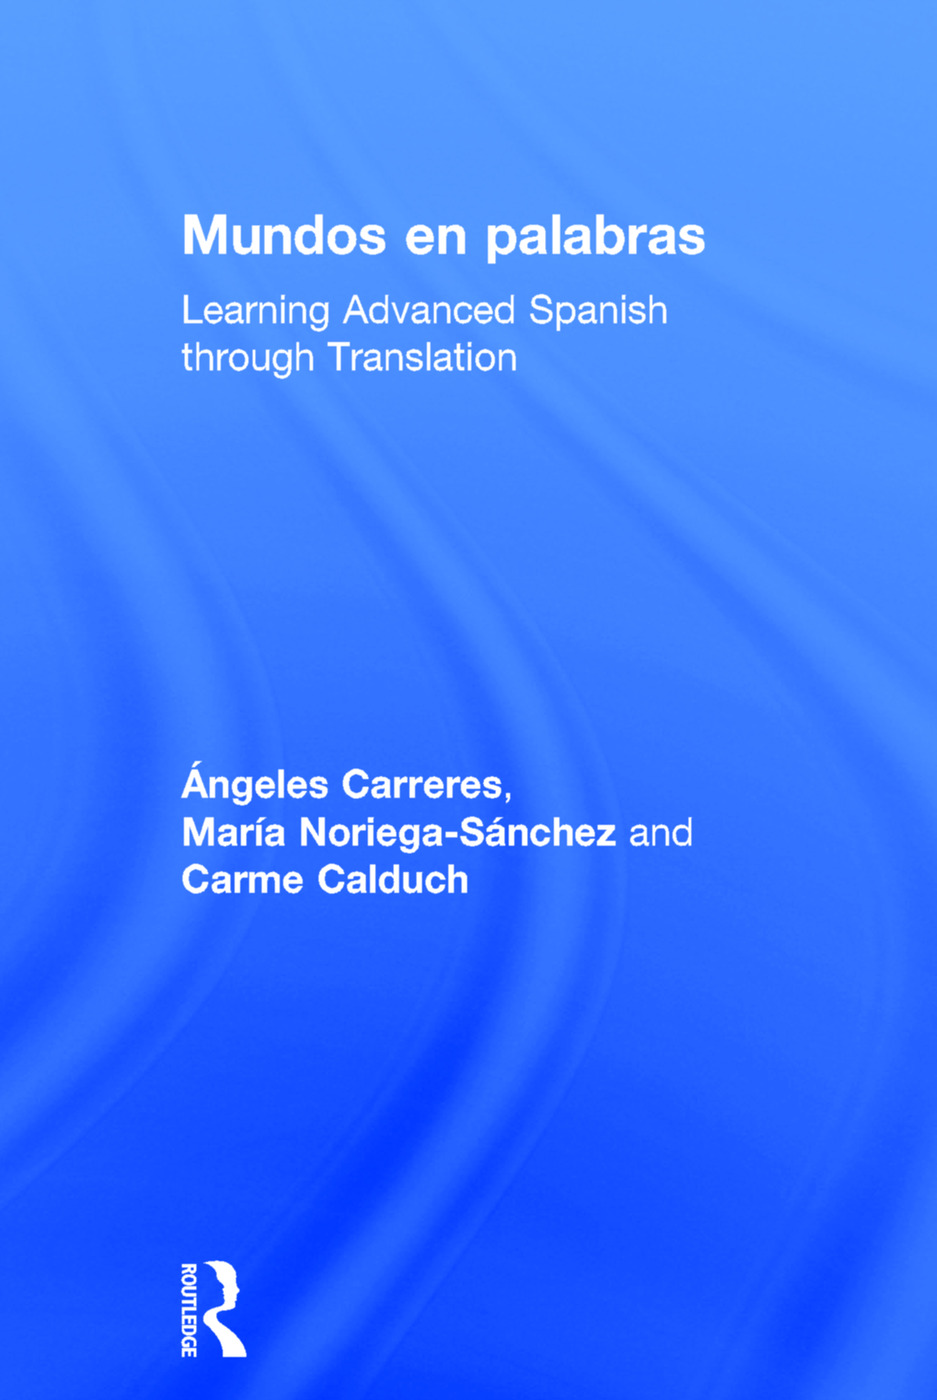 Mundos en palabras: Learning Advanced Spanish through Translation book cover